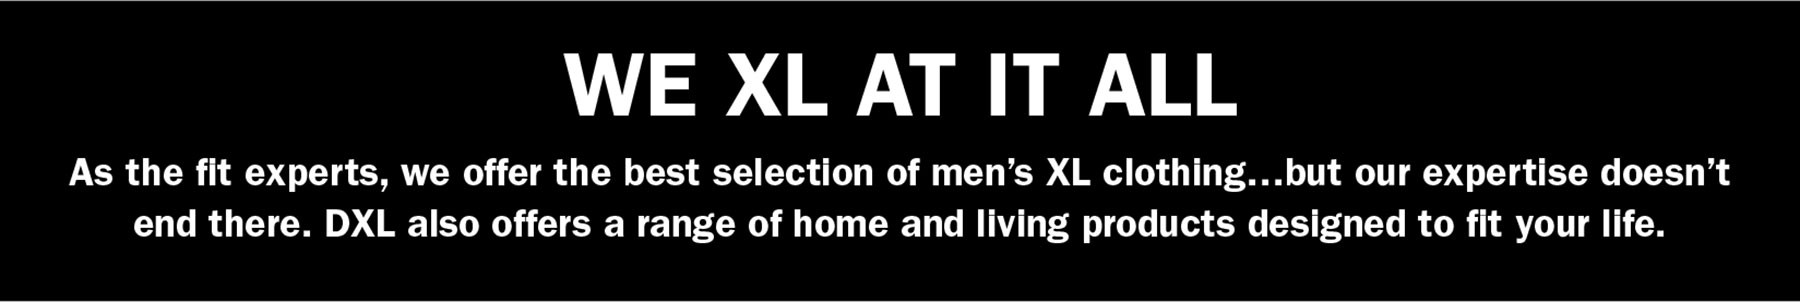 WE XL AT IT ALL | As the fit experts, we offer the best selection of men's XL clothing…but our expertise doesn't end there. DXL also offers a range of home and living products designed to fit your life.